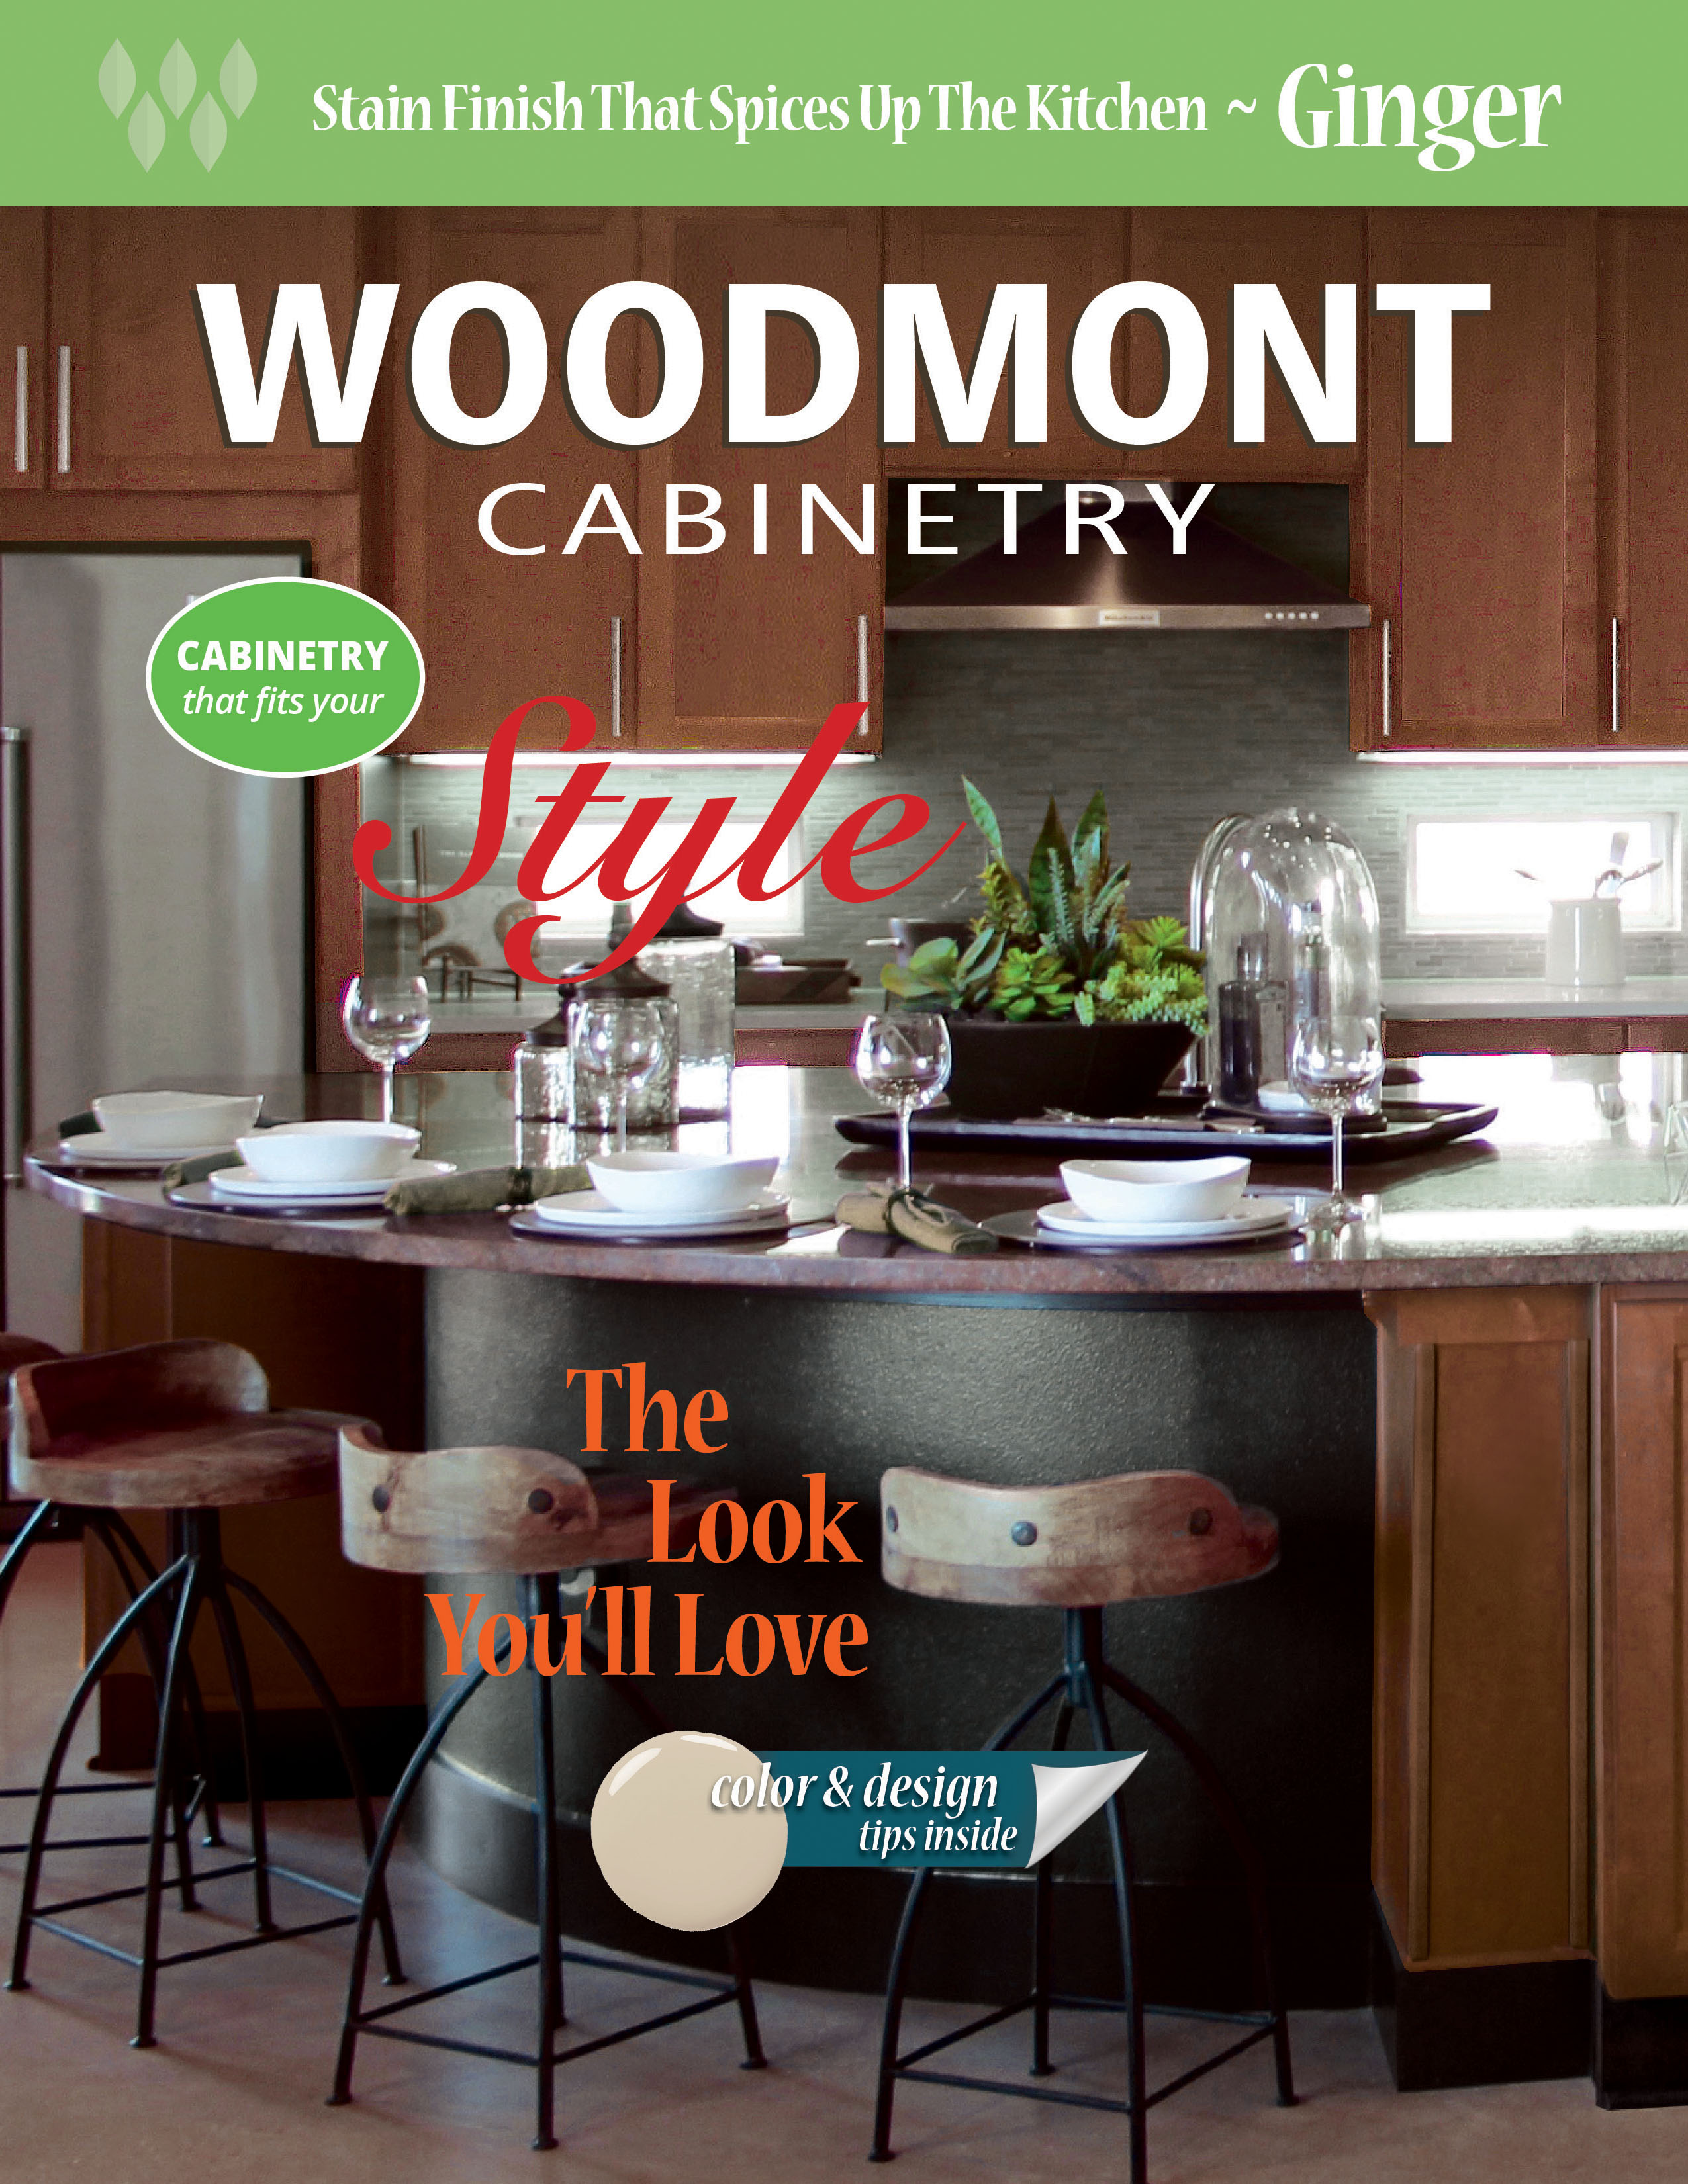 Beau Woodmont Cabinetry